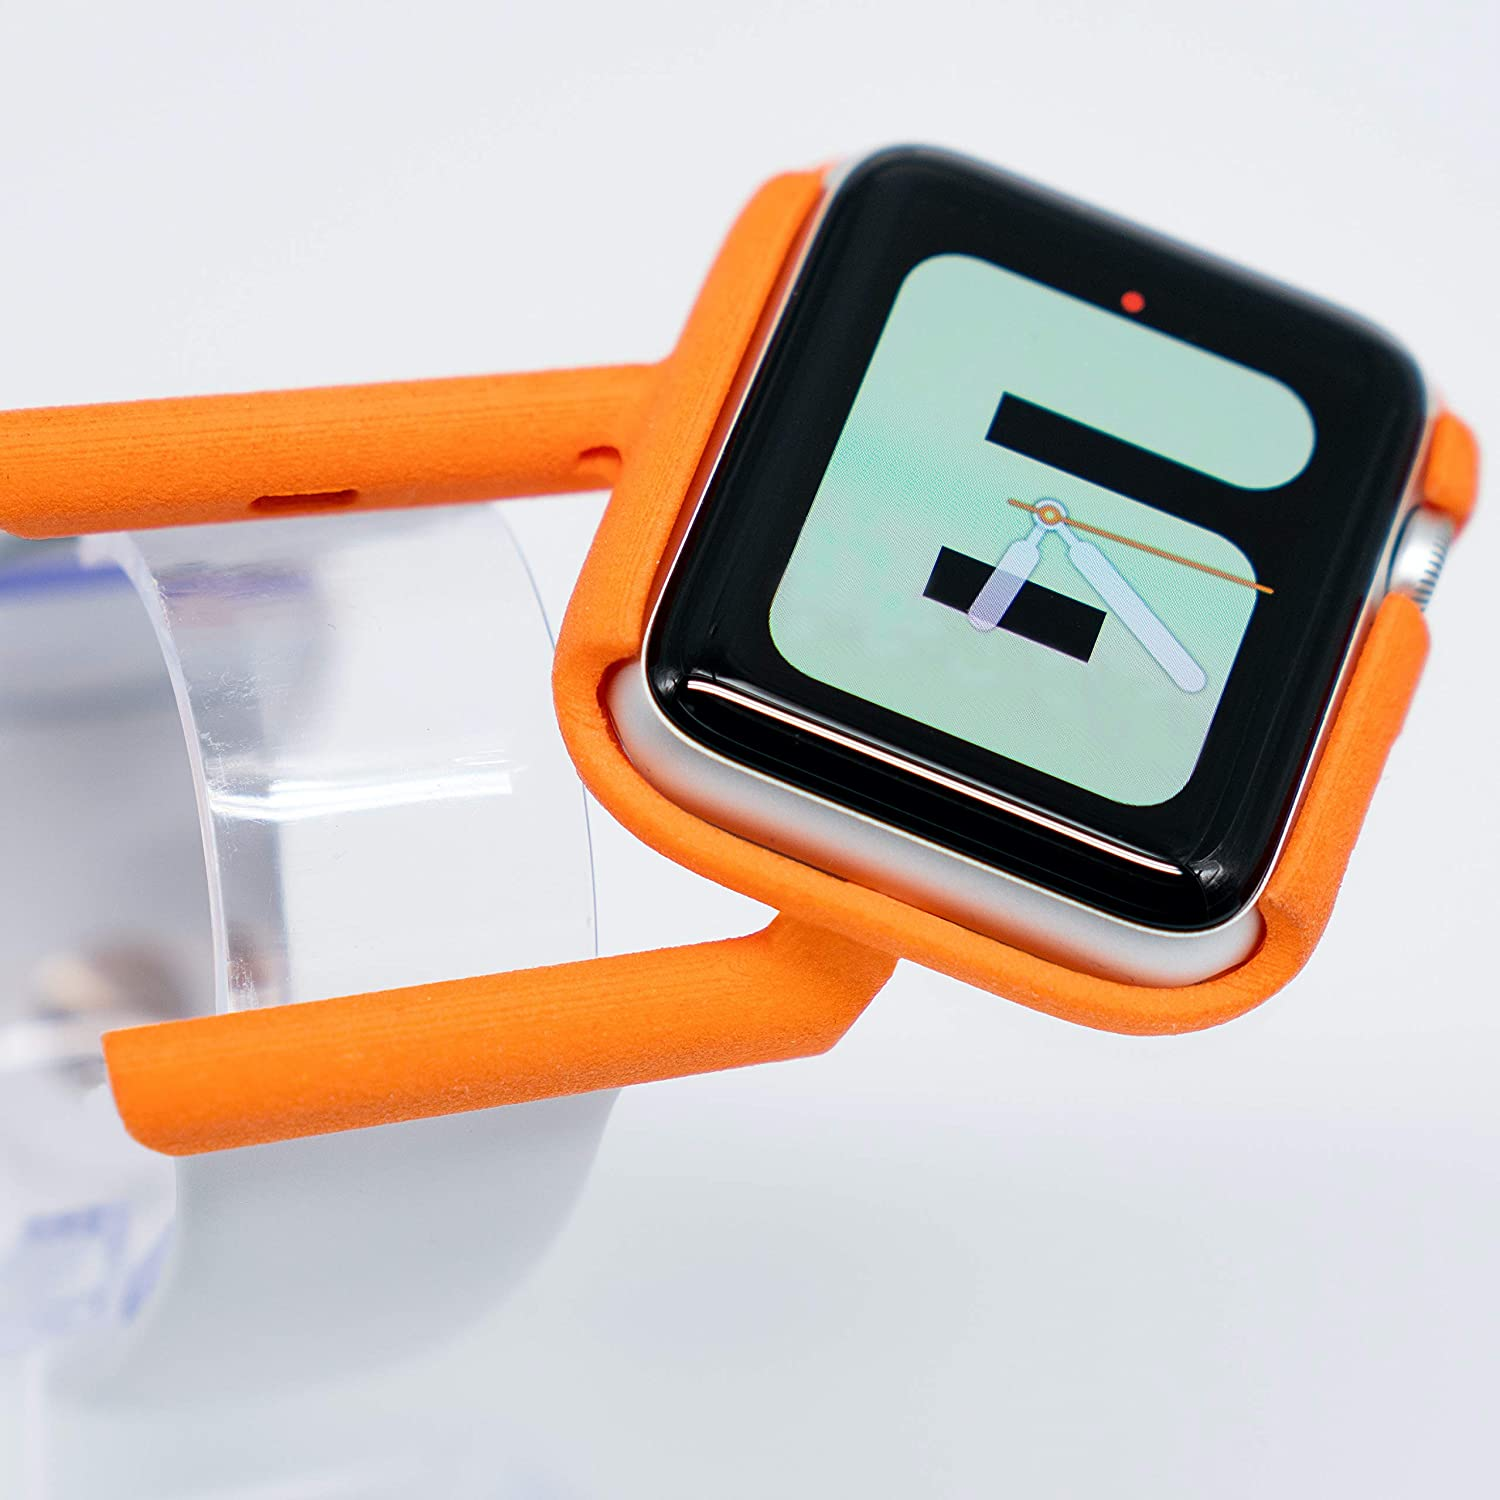 TILT Apple Watch Band - Tilted Apple Watch Holder - Compatible With Apple Watch - Orange - Apple Watch Case For Cycling, Hiking, Driving, Gaming & More - Comfortable Ergonomic Viewing Angle For Your Apple Watch